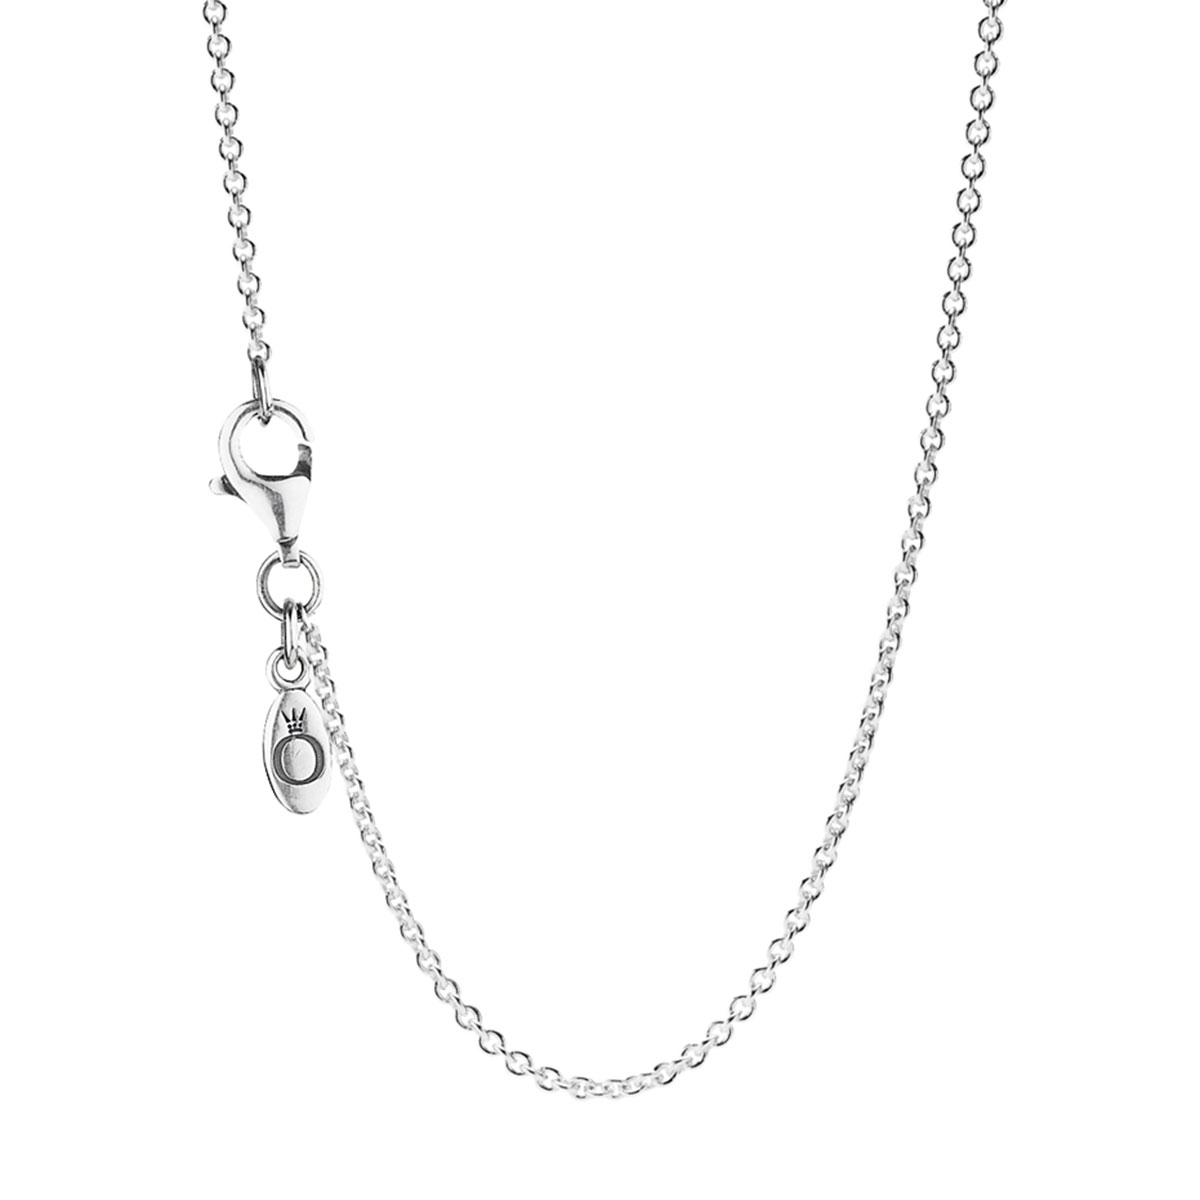 PANDORA Sterling Silver Chain with clasp